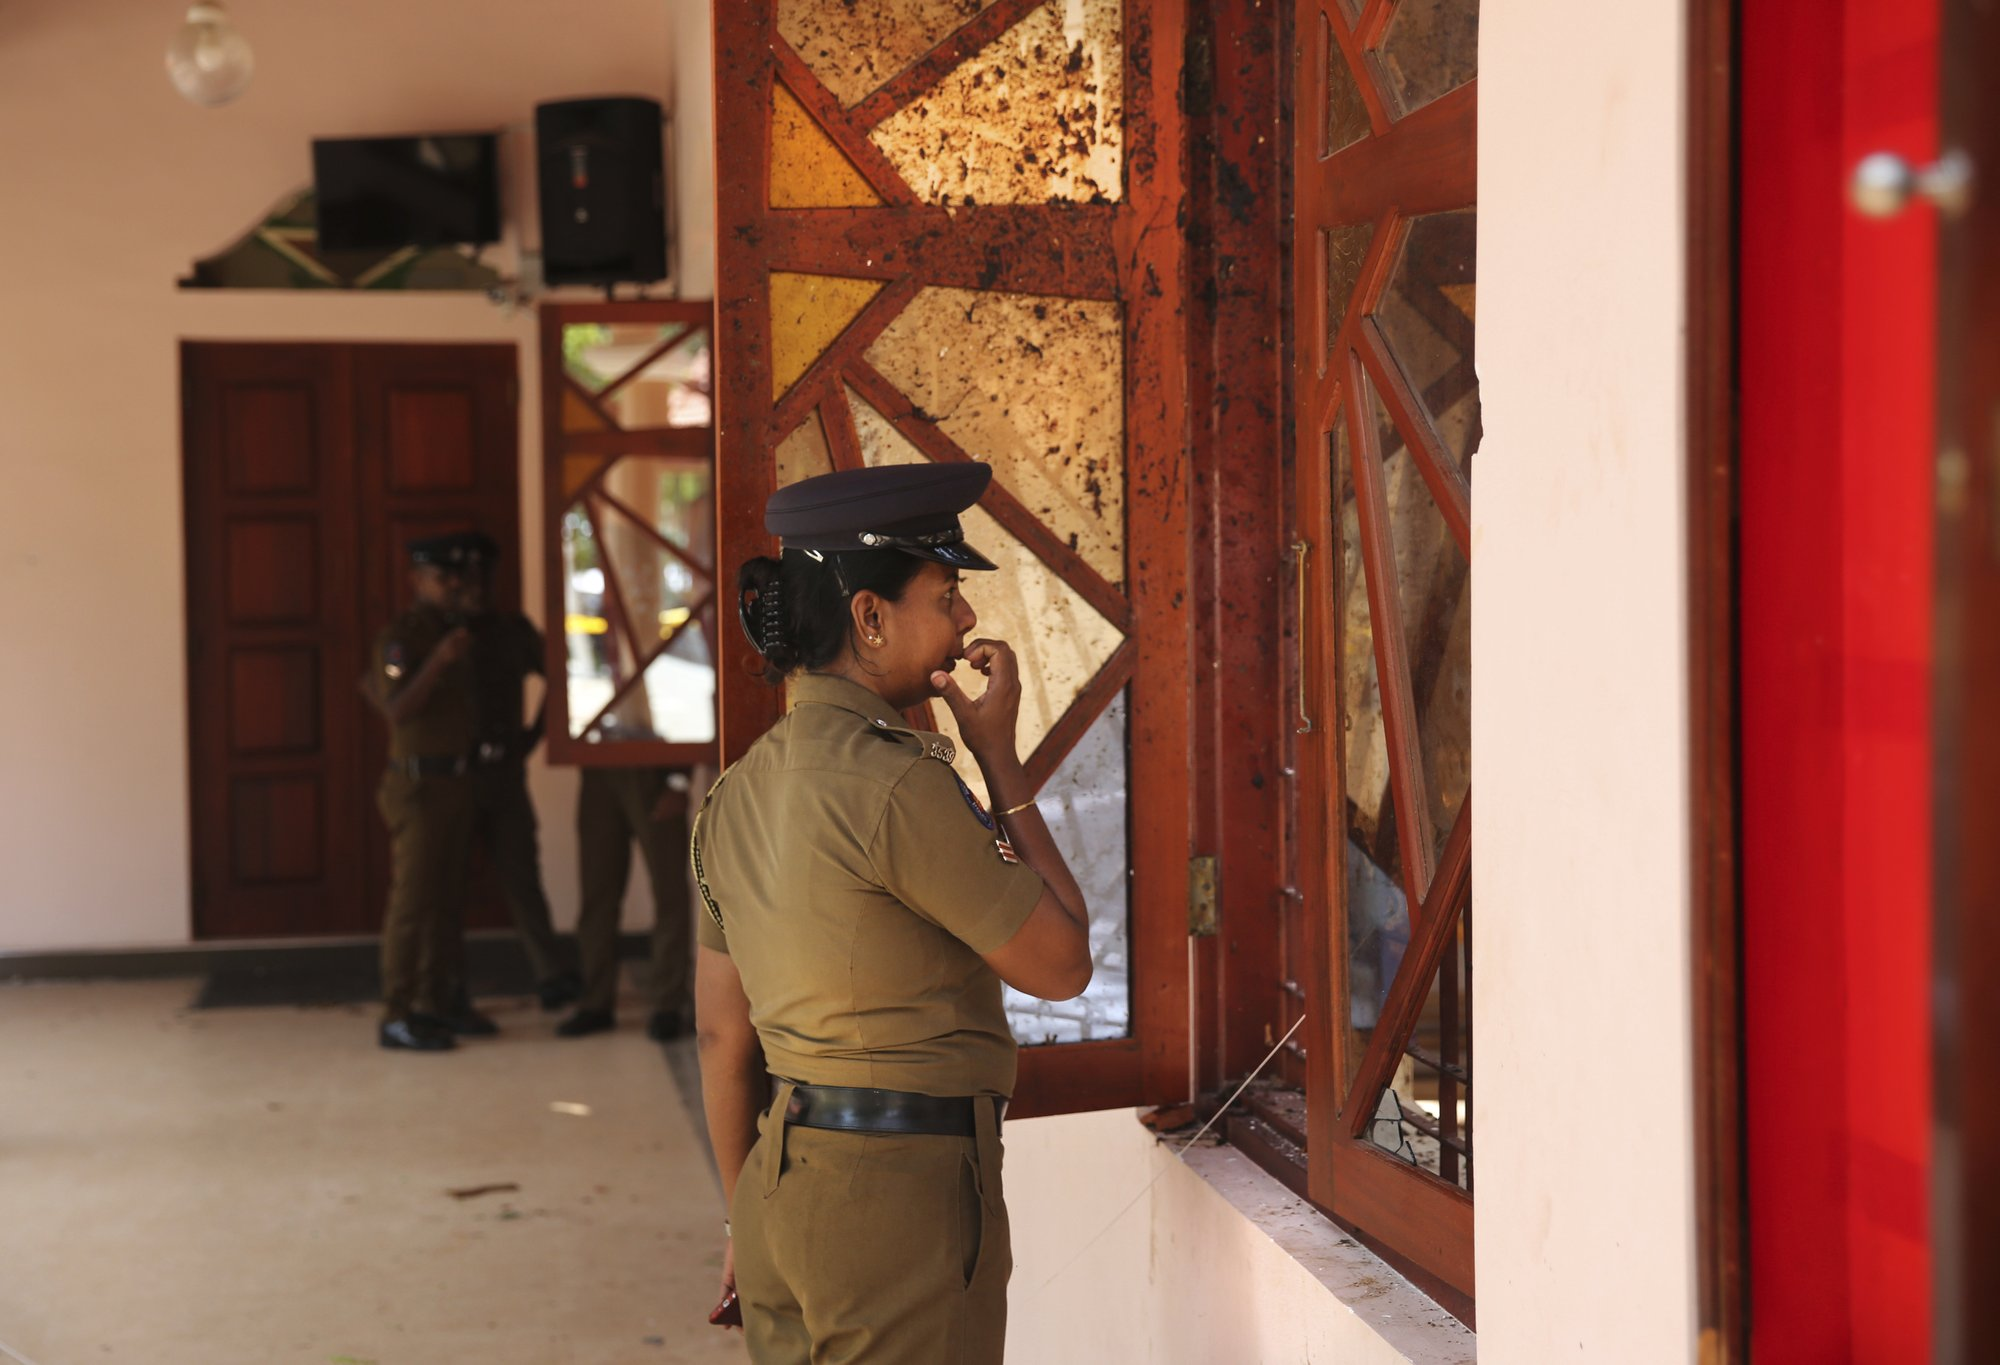 In this Thursday, April 25, 2019 photo, a Sri Lankan policewoman looks at the damage inside St. Sebastian's Church, one of the sites of Easter Sunday's bombings, in Negombo, north of Colombo, Sri Lanka. Nearly a week later, even after the cleaners have come through, the blood can still be seen clearly. The statues of Jesus and the saints are still speckled with fragments of shrapnel. The smell of death is everywhere, though the bodies are long gone. (AP Photo/Manish Swarup)